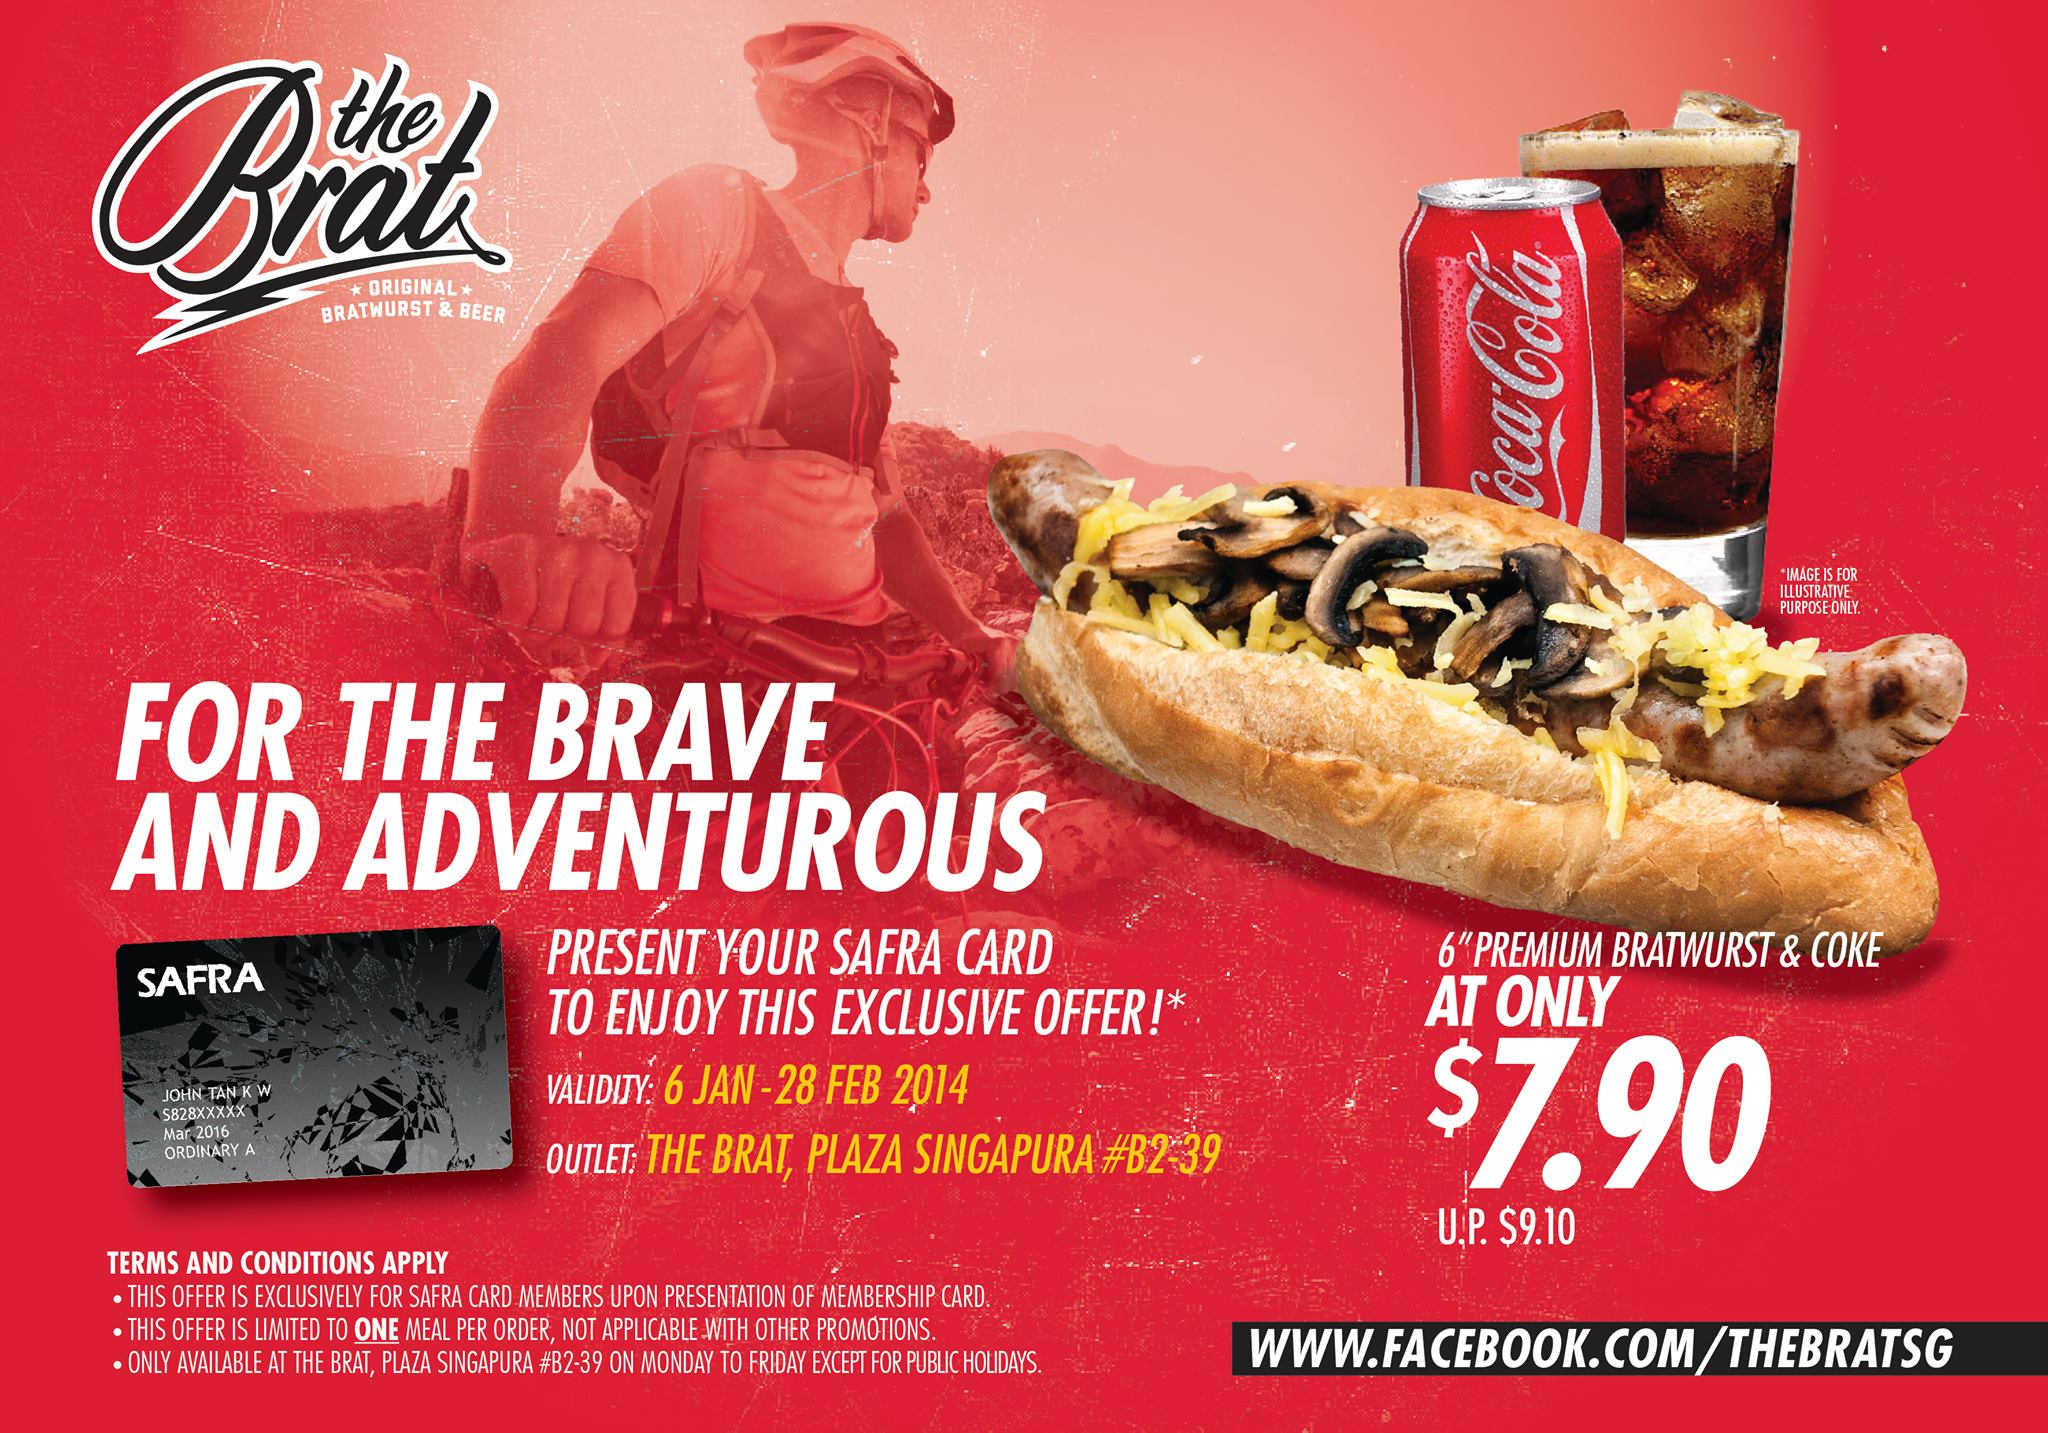 The Brat $7.90 Premium Bratwurst & Coke Combo For SAFRA Members @ Plaza Singapura